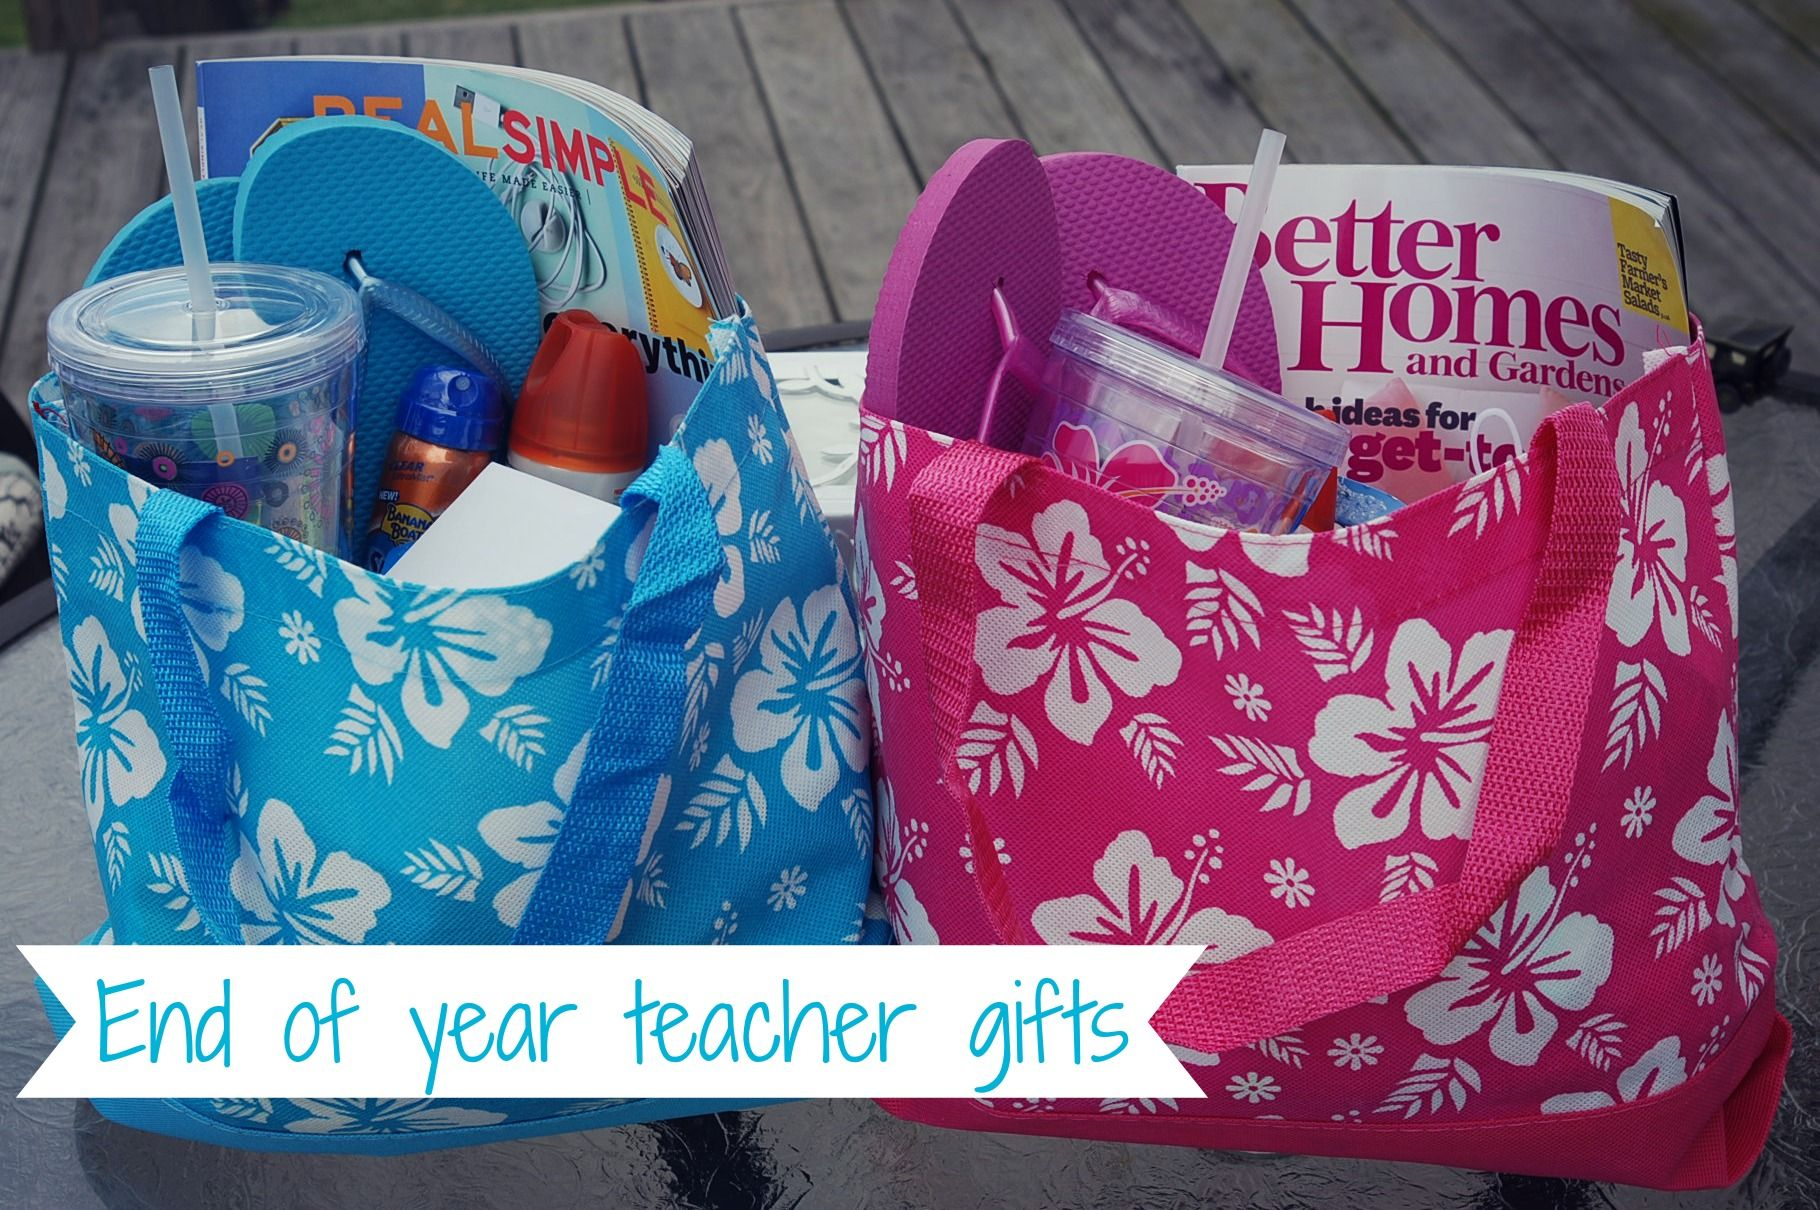 End of year teacher gifts endlessly inspired teacher